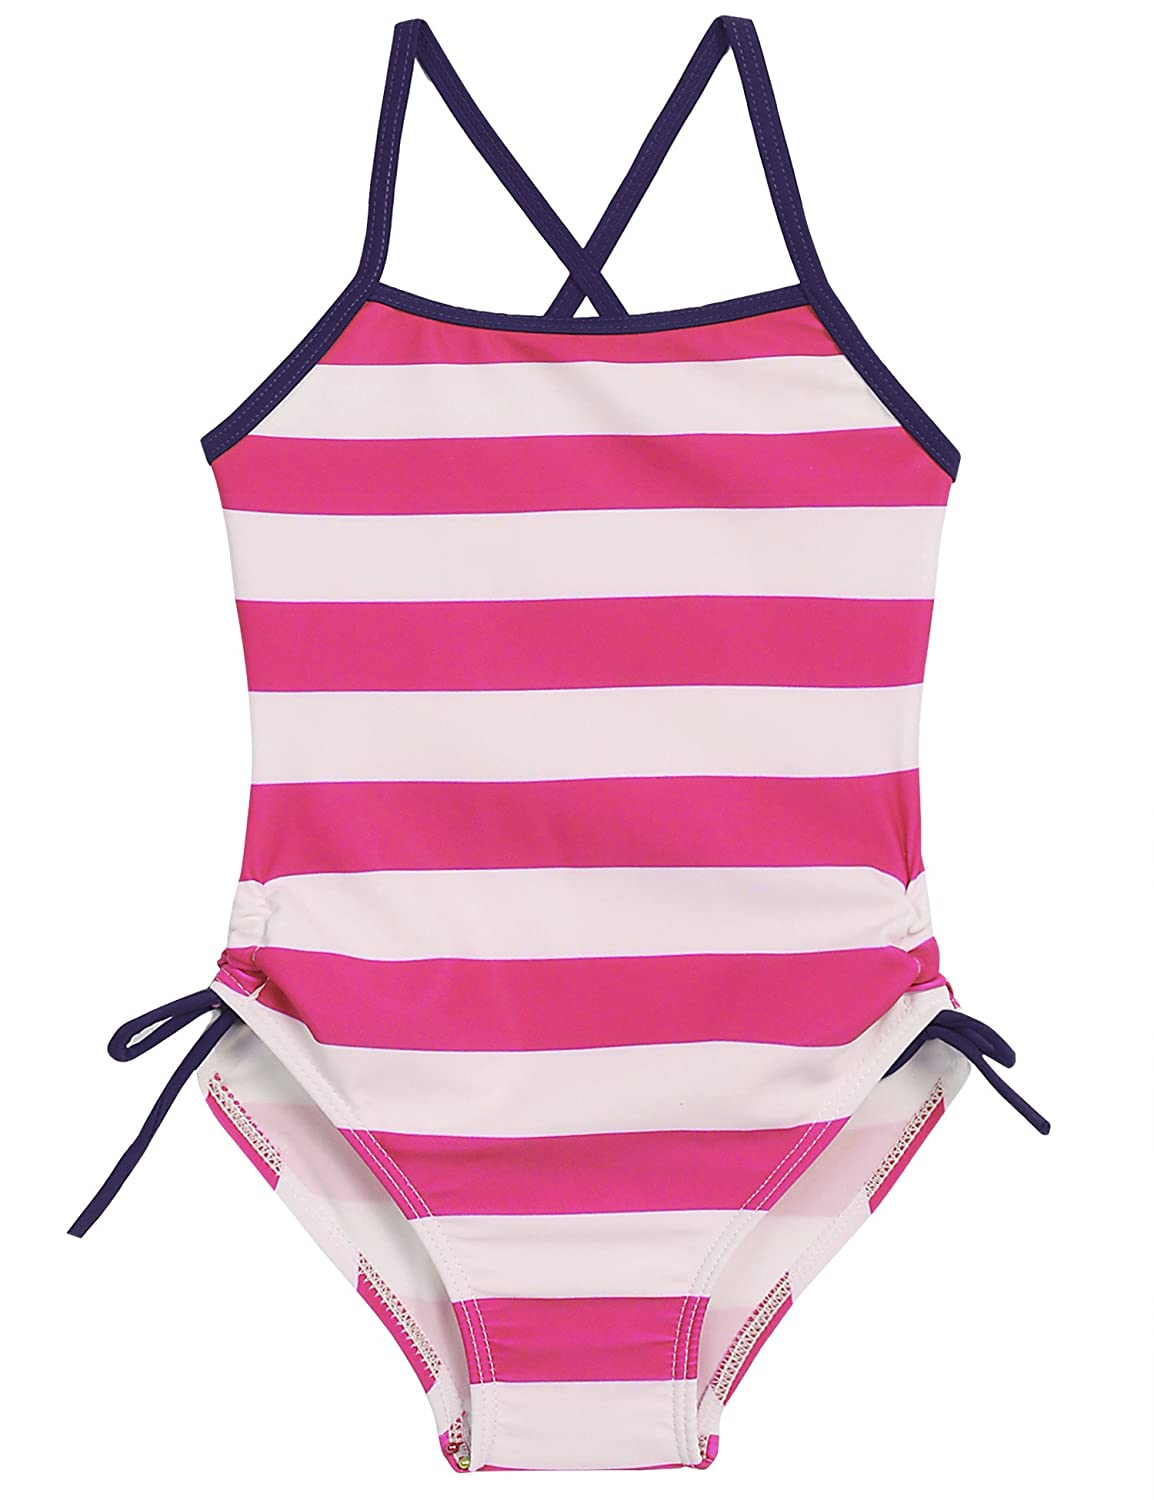 Arshiner Little Kids Strap One Piece Bathing Swimsuit 3-8Y